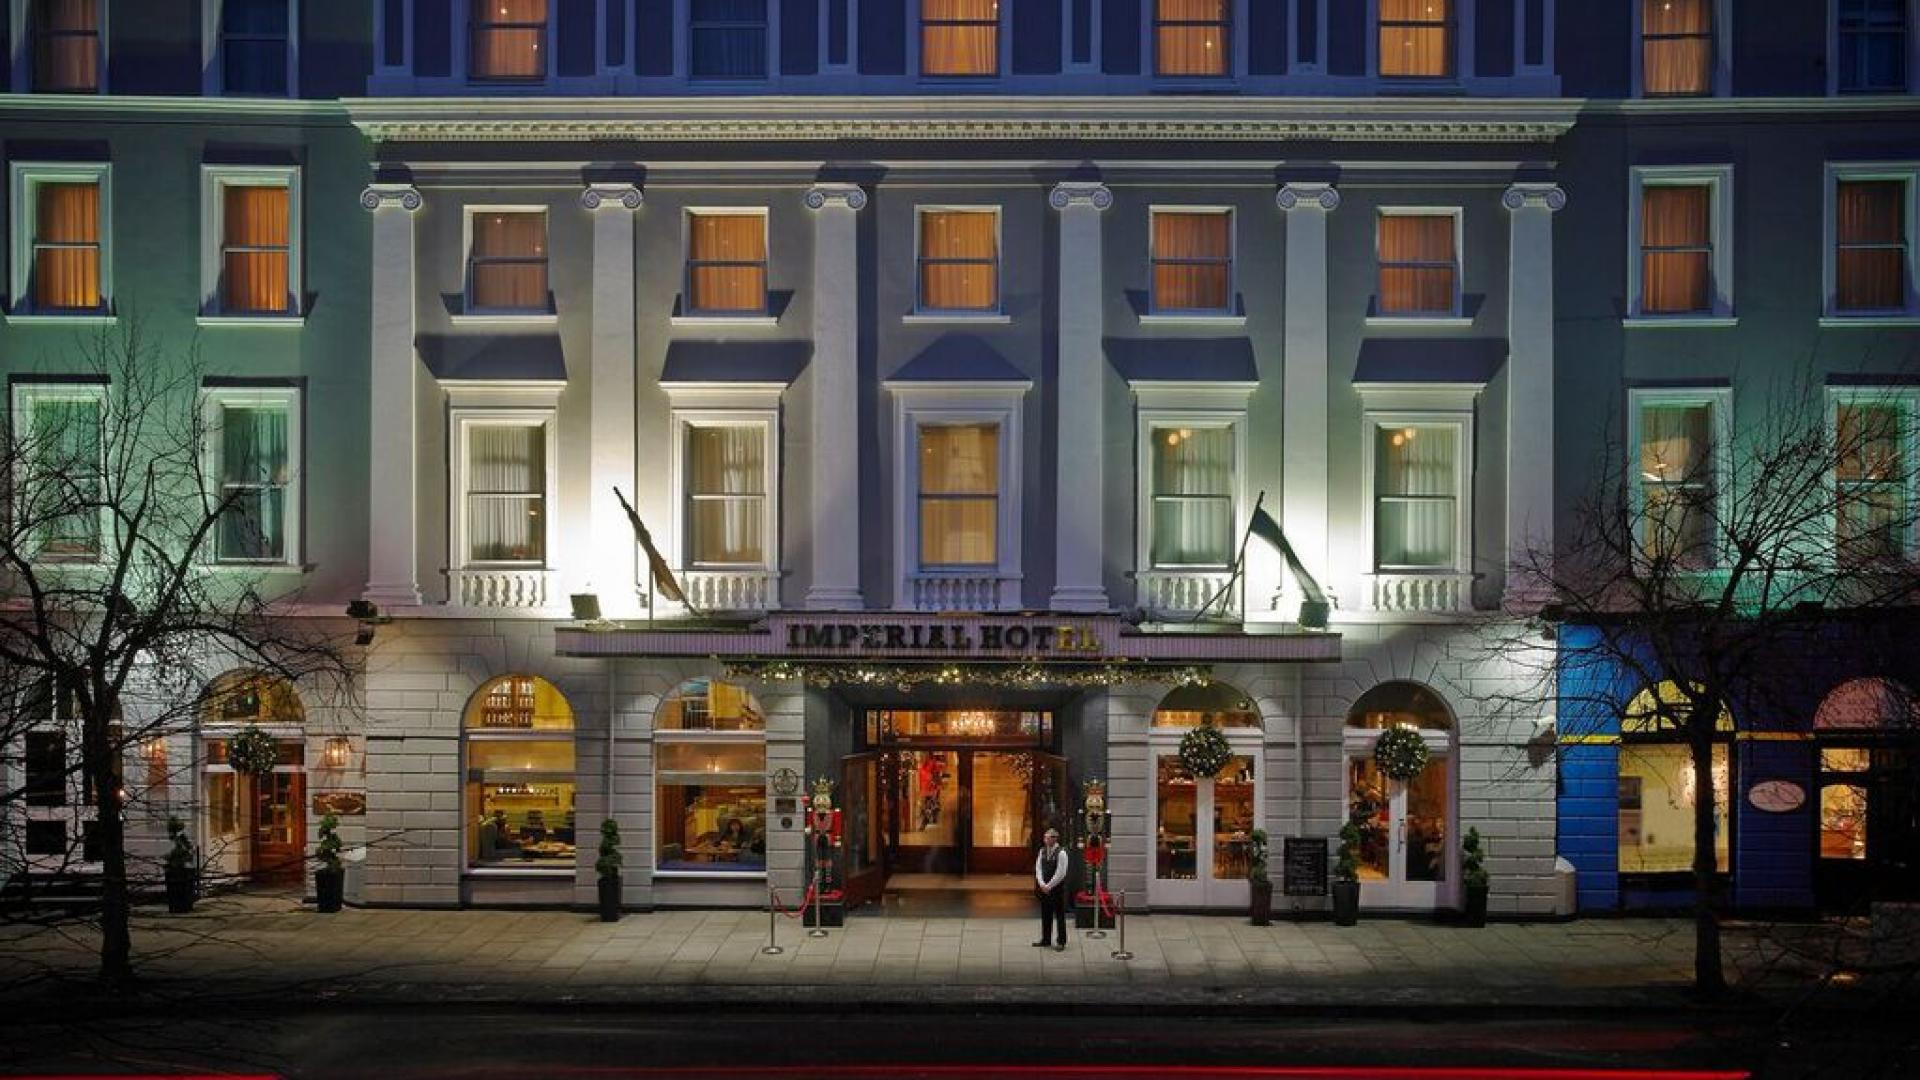 Gallery   Cork City Hotels   Imperial Hotel Cork